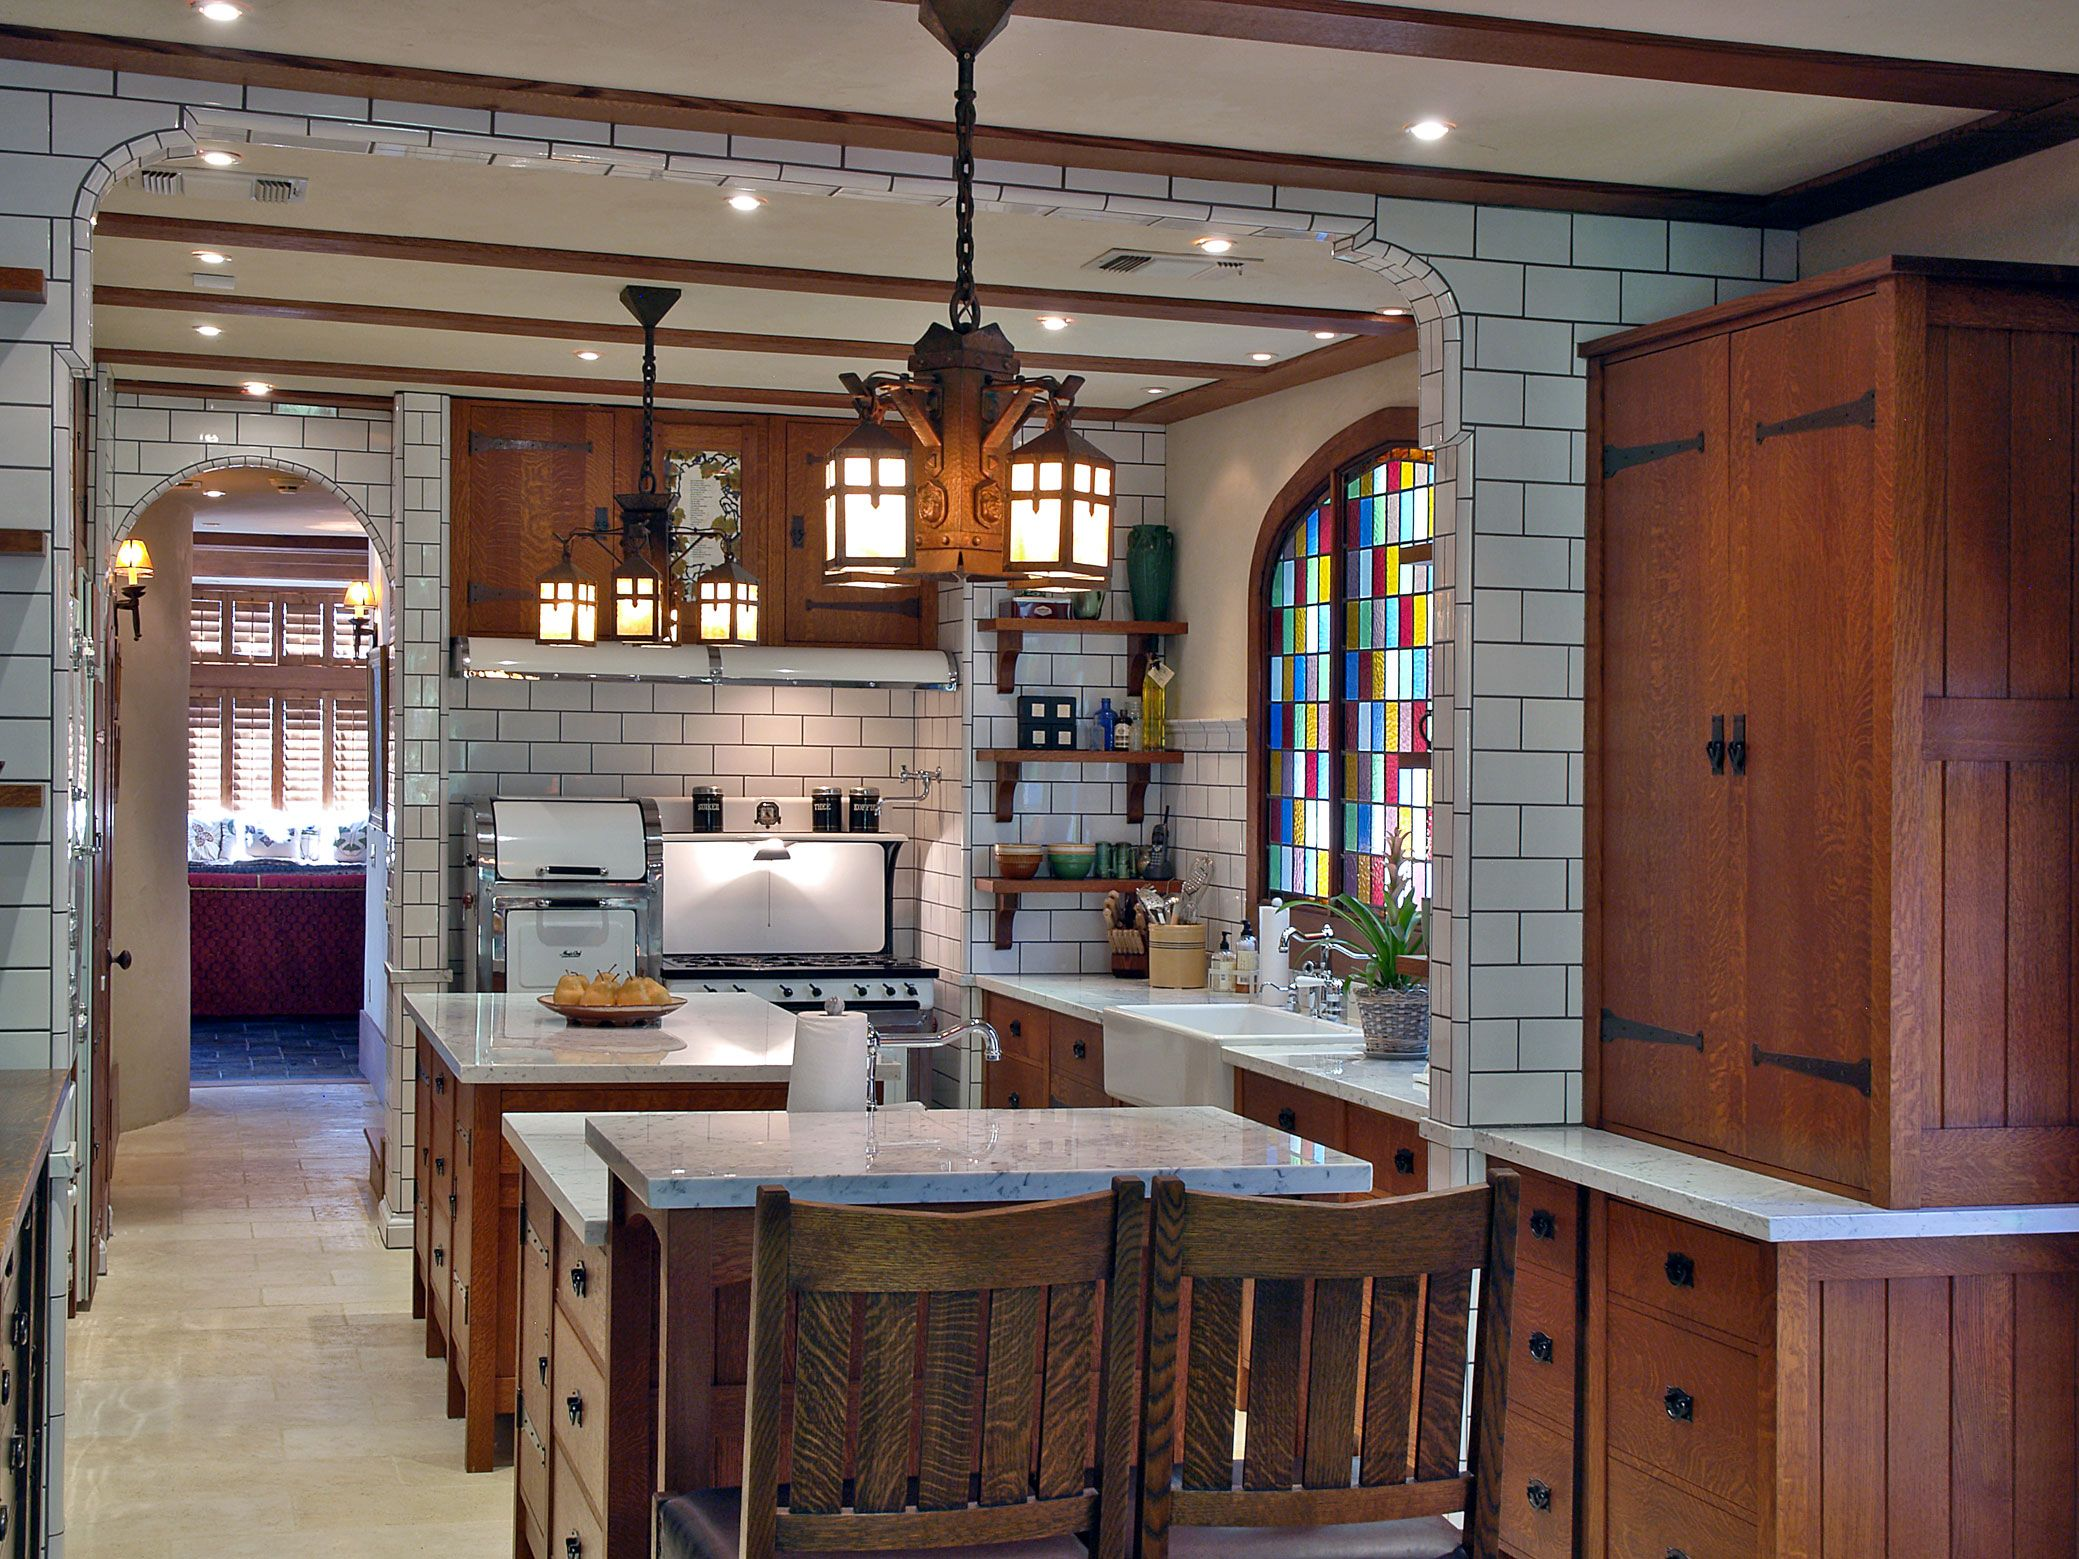 Awesome Arts And Crafts Kitchen Design Ideas Part - 7: Interesting Play Of Materials. Tile And Wood Work Well Together. Alluring  Small White Kitchen